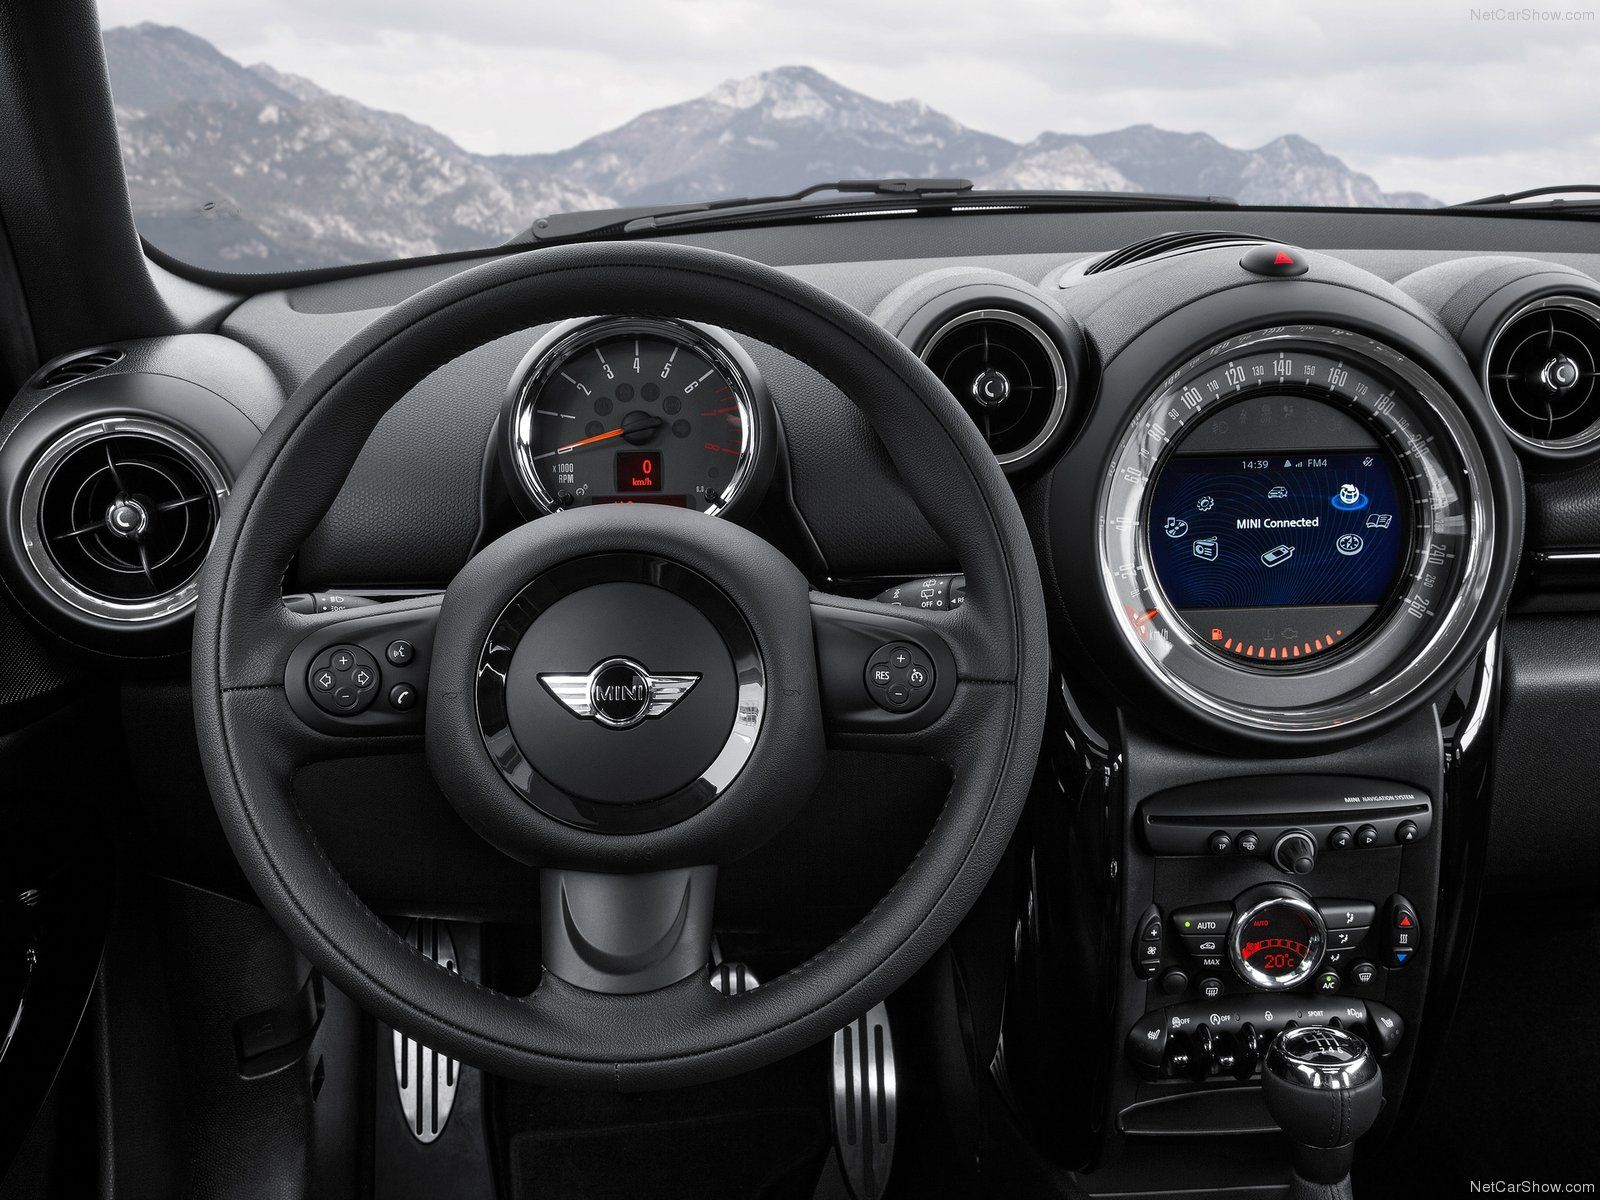 Of 90 Kw 122 Hp At 6 000 Rpm And With Peak Torque 160 Newton Metres 118 Lb Ft Available From 4 250 The Engine Ing Mini Cooper Paceman